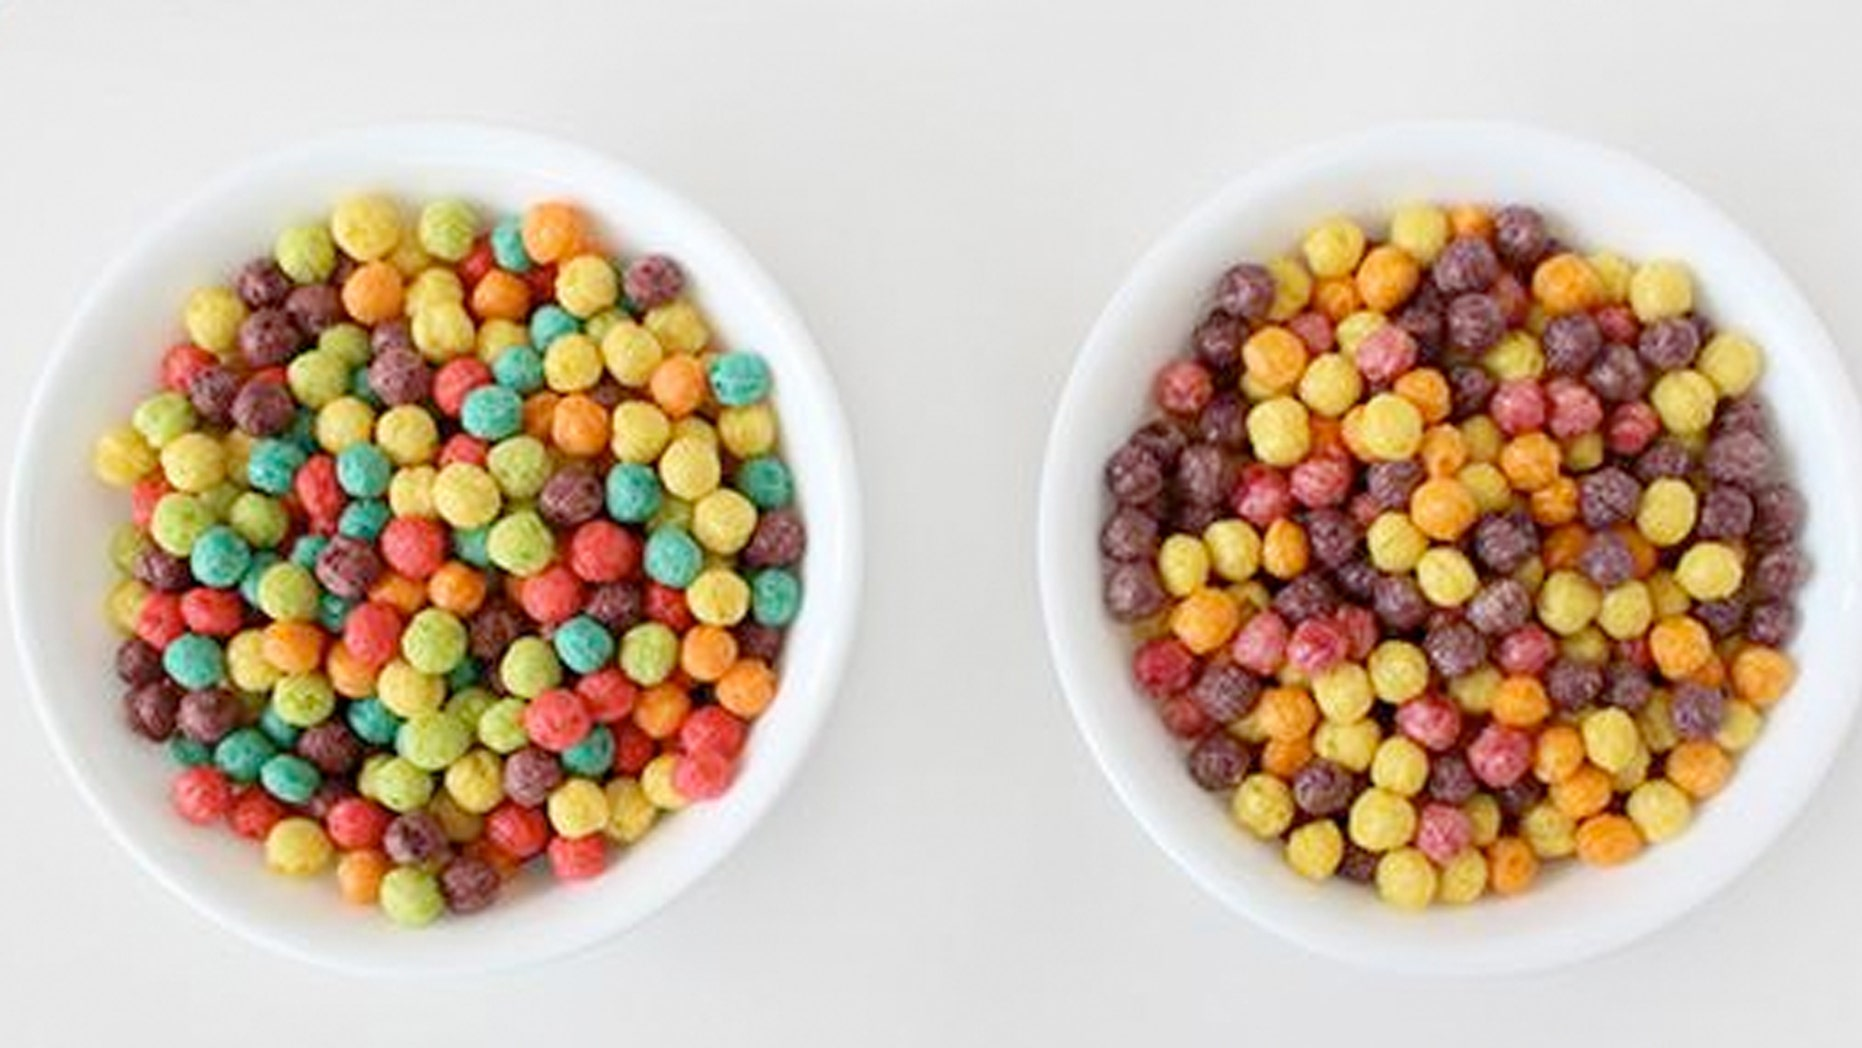 This week, Trix's brightly-colored cereal won't be as bright.  That's because it is now made without artificial colors and flavors.